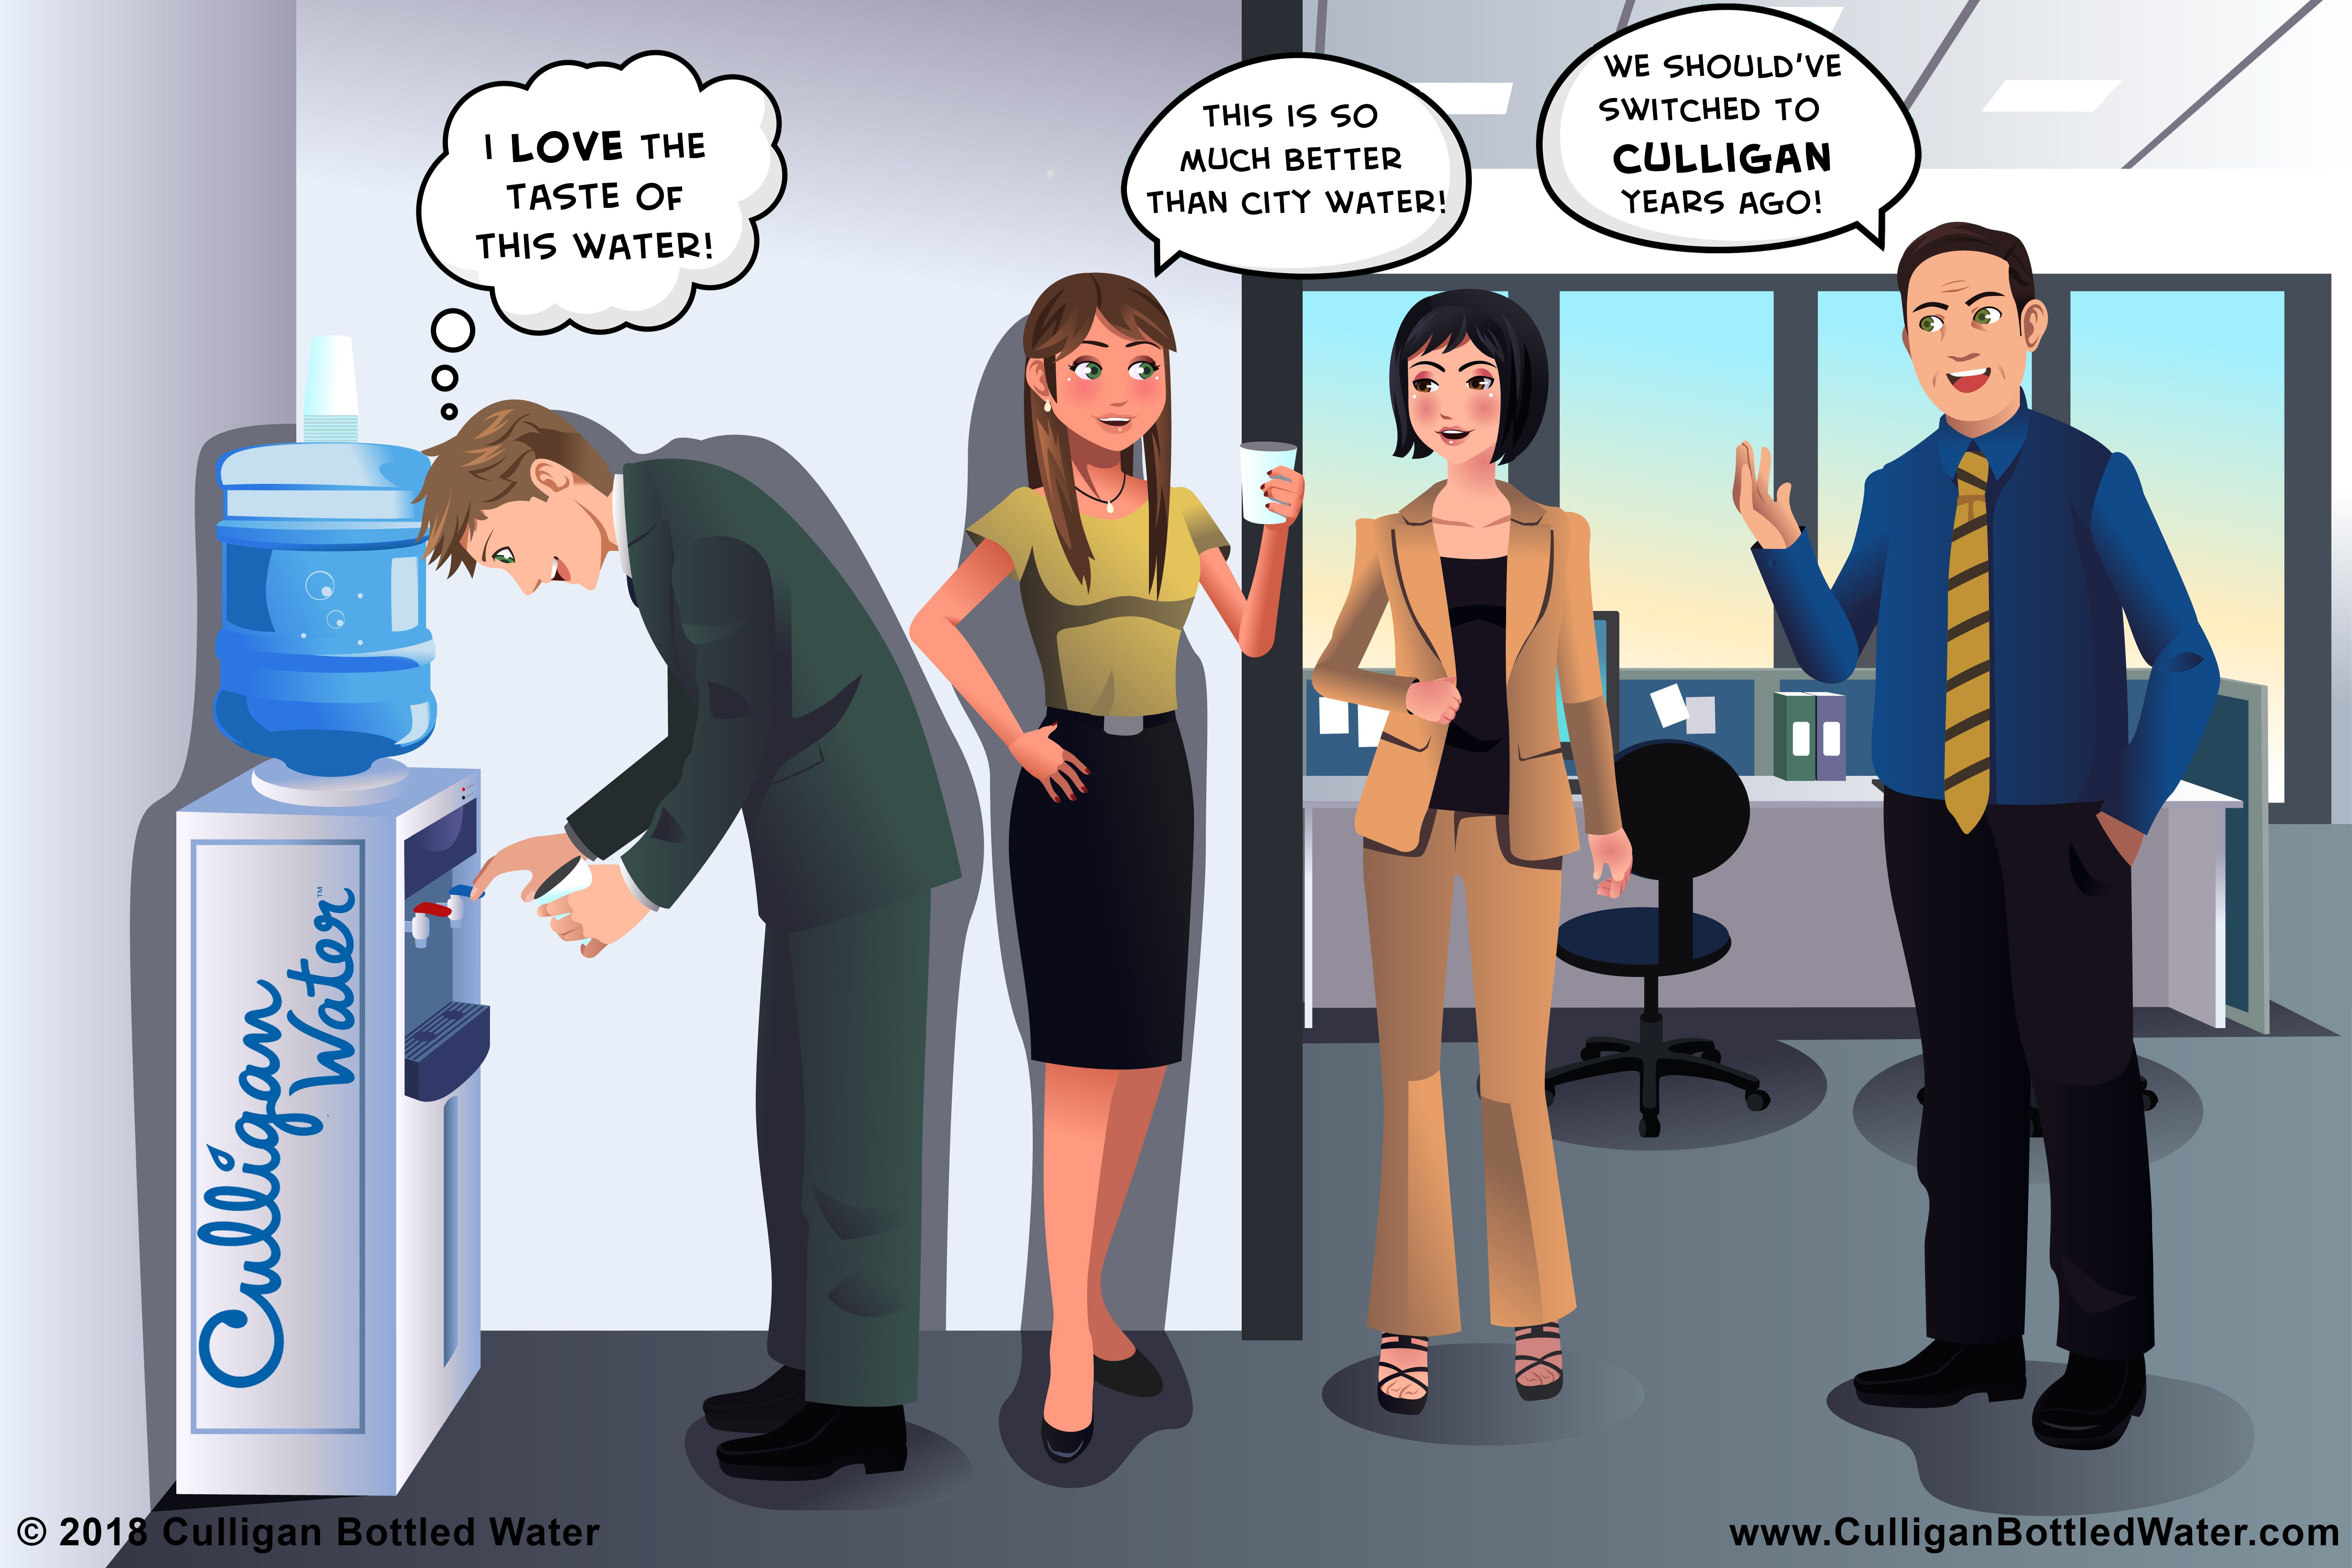 Find out what you have been missing with office water